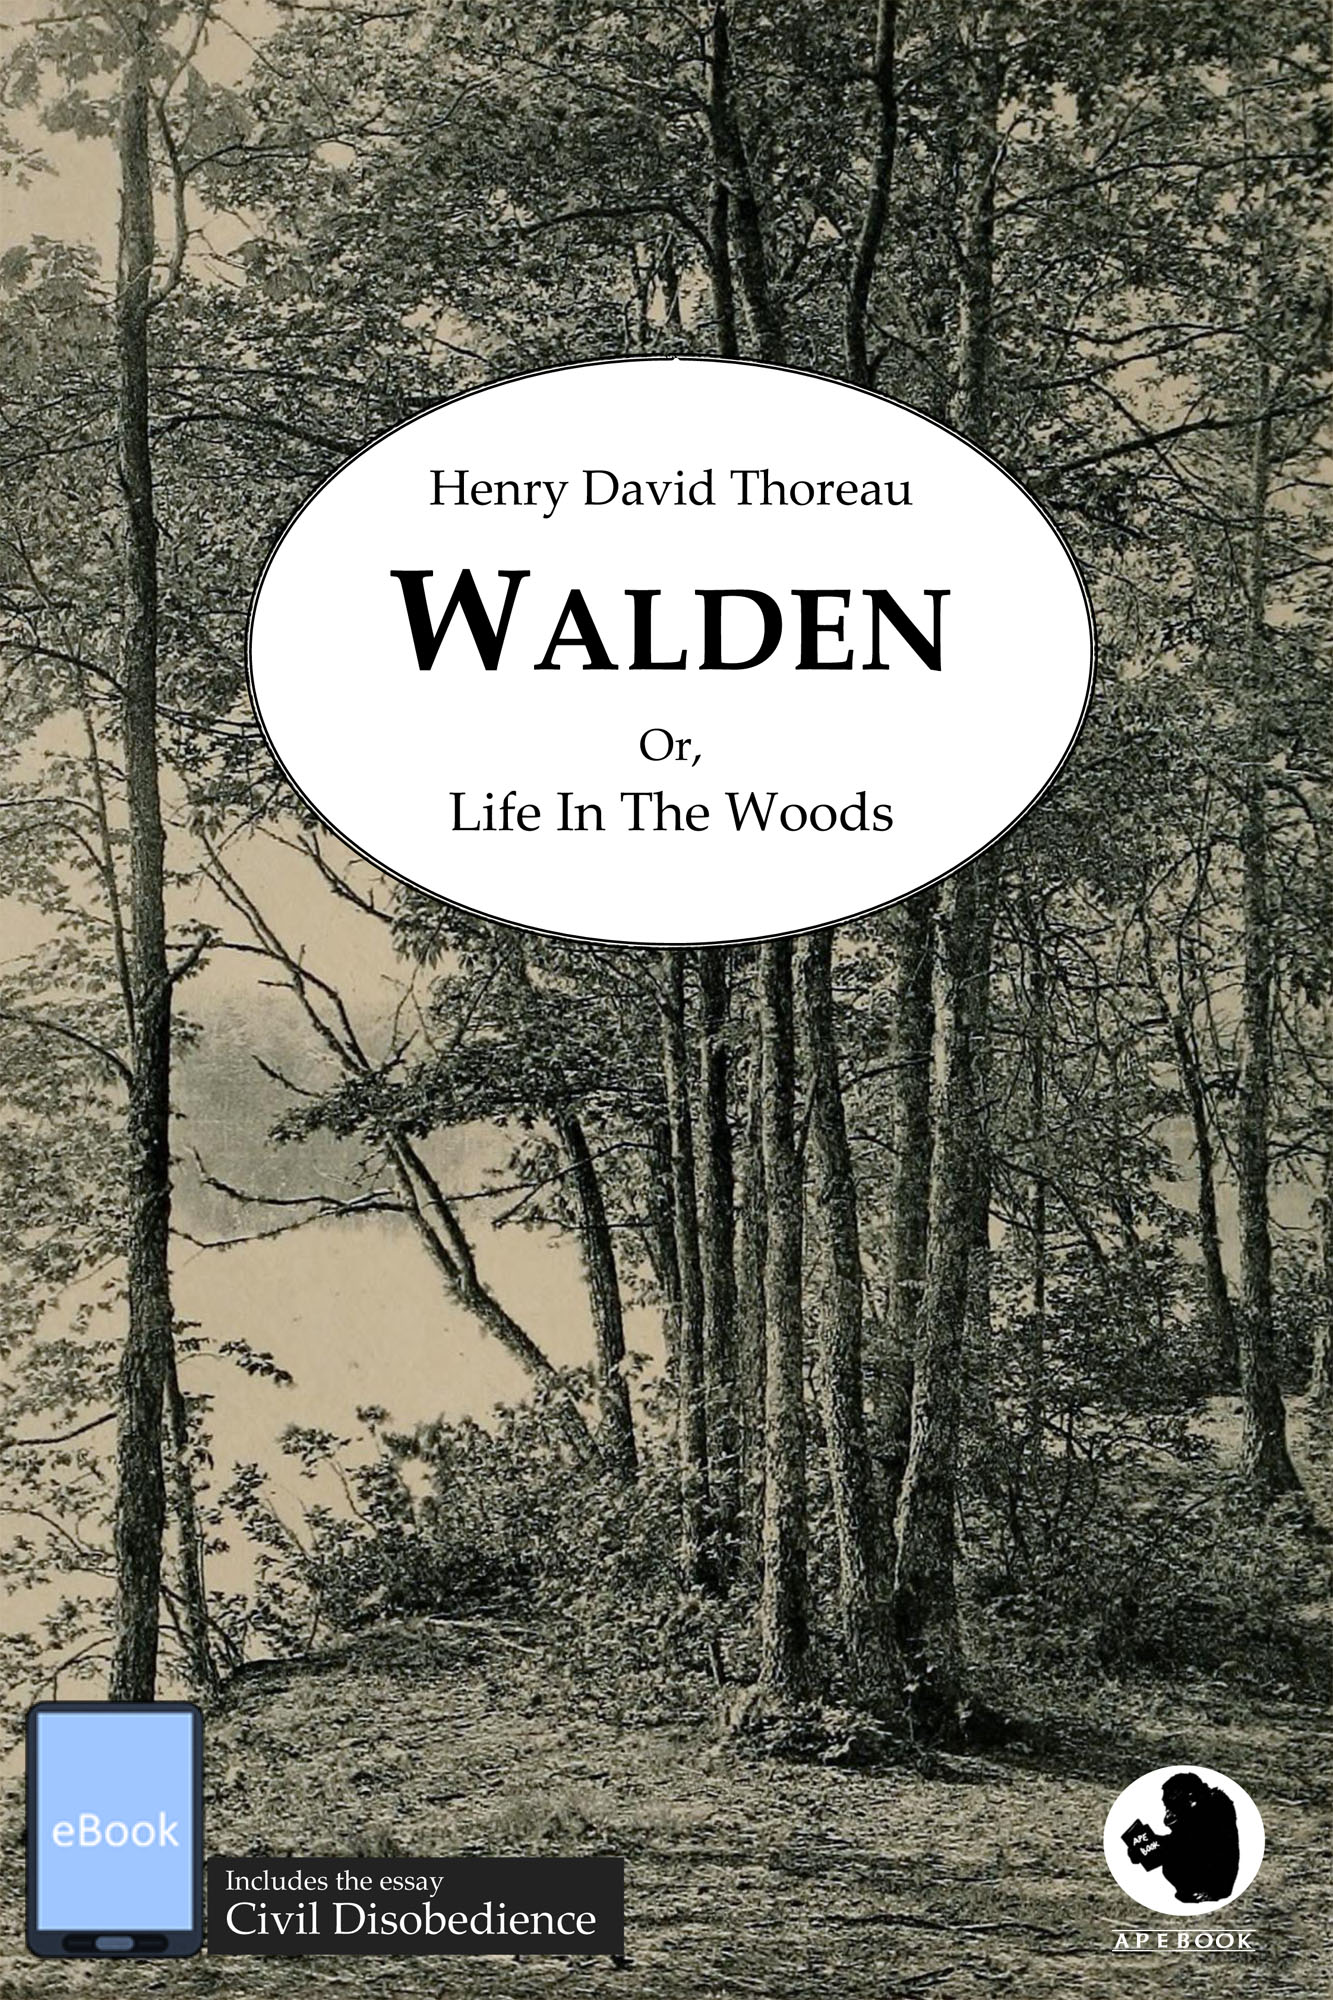 Henry David Thoreau Walden Englebook